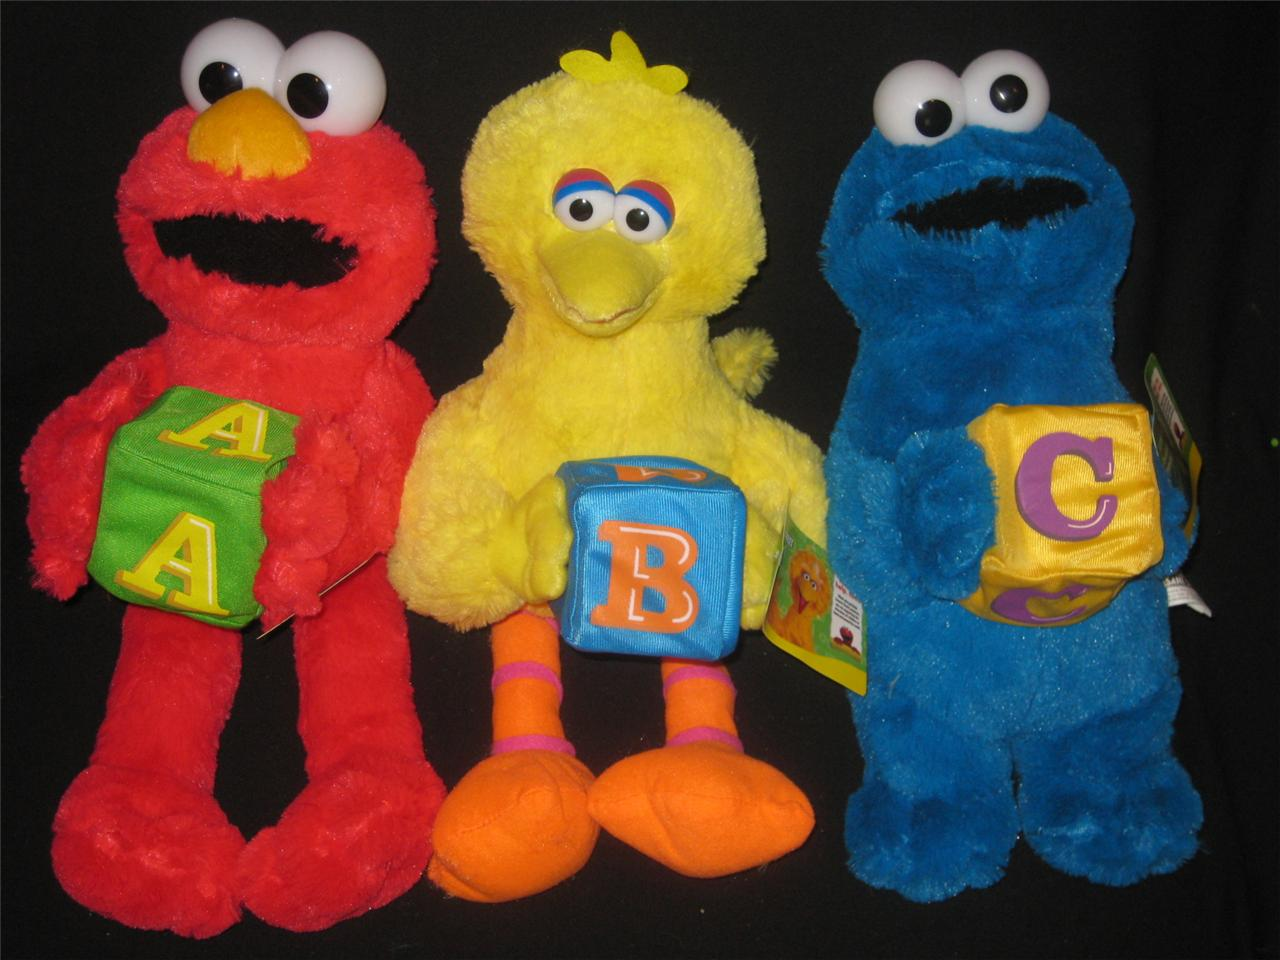 ELMO-BIG-BIRD-COOKIE-MONSTER-SESAME-STREET-LARGE-PLUSH-DOLL-TOY-ABC-SET-NEW